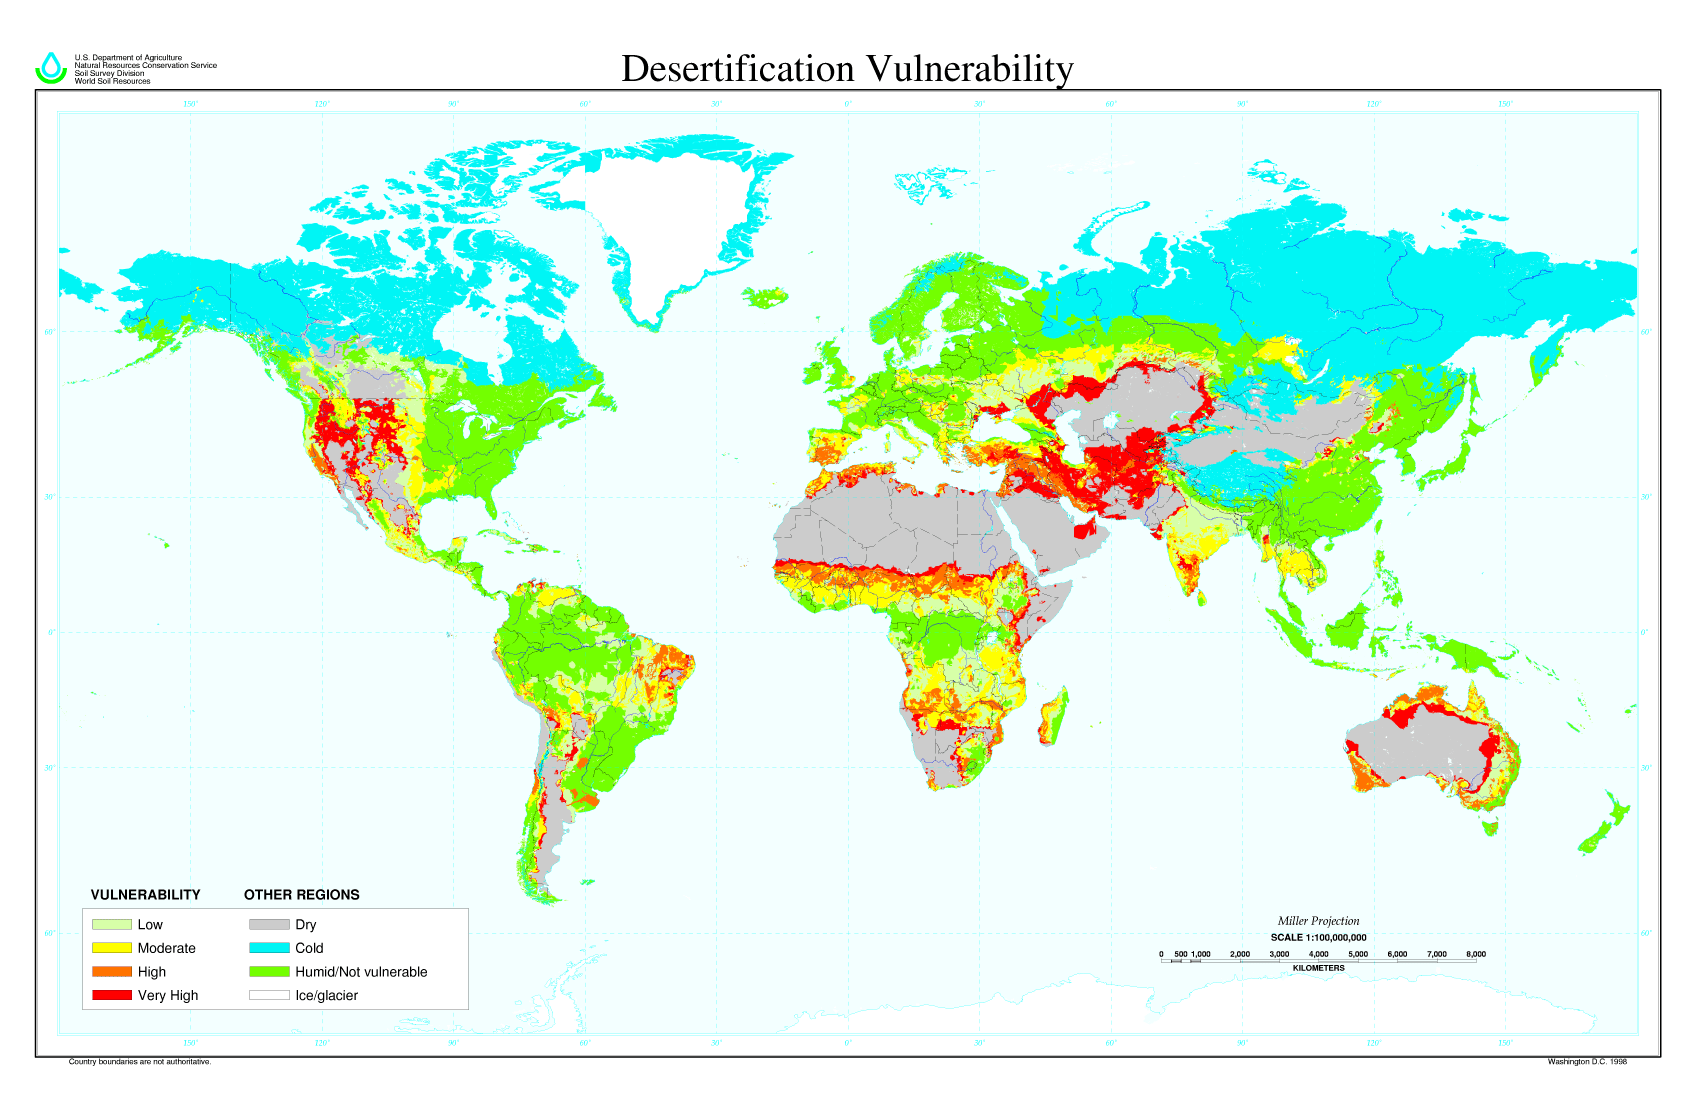 A global map of desertification